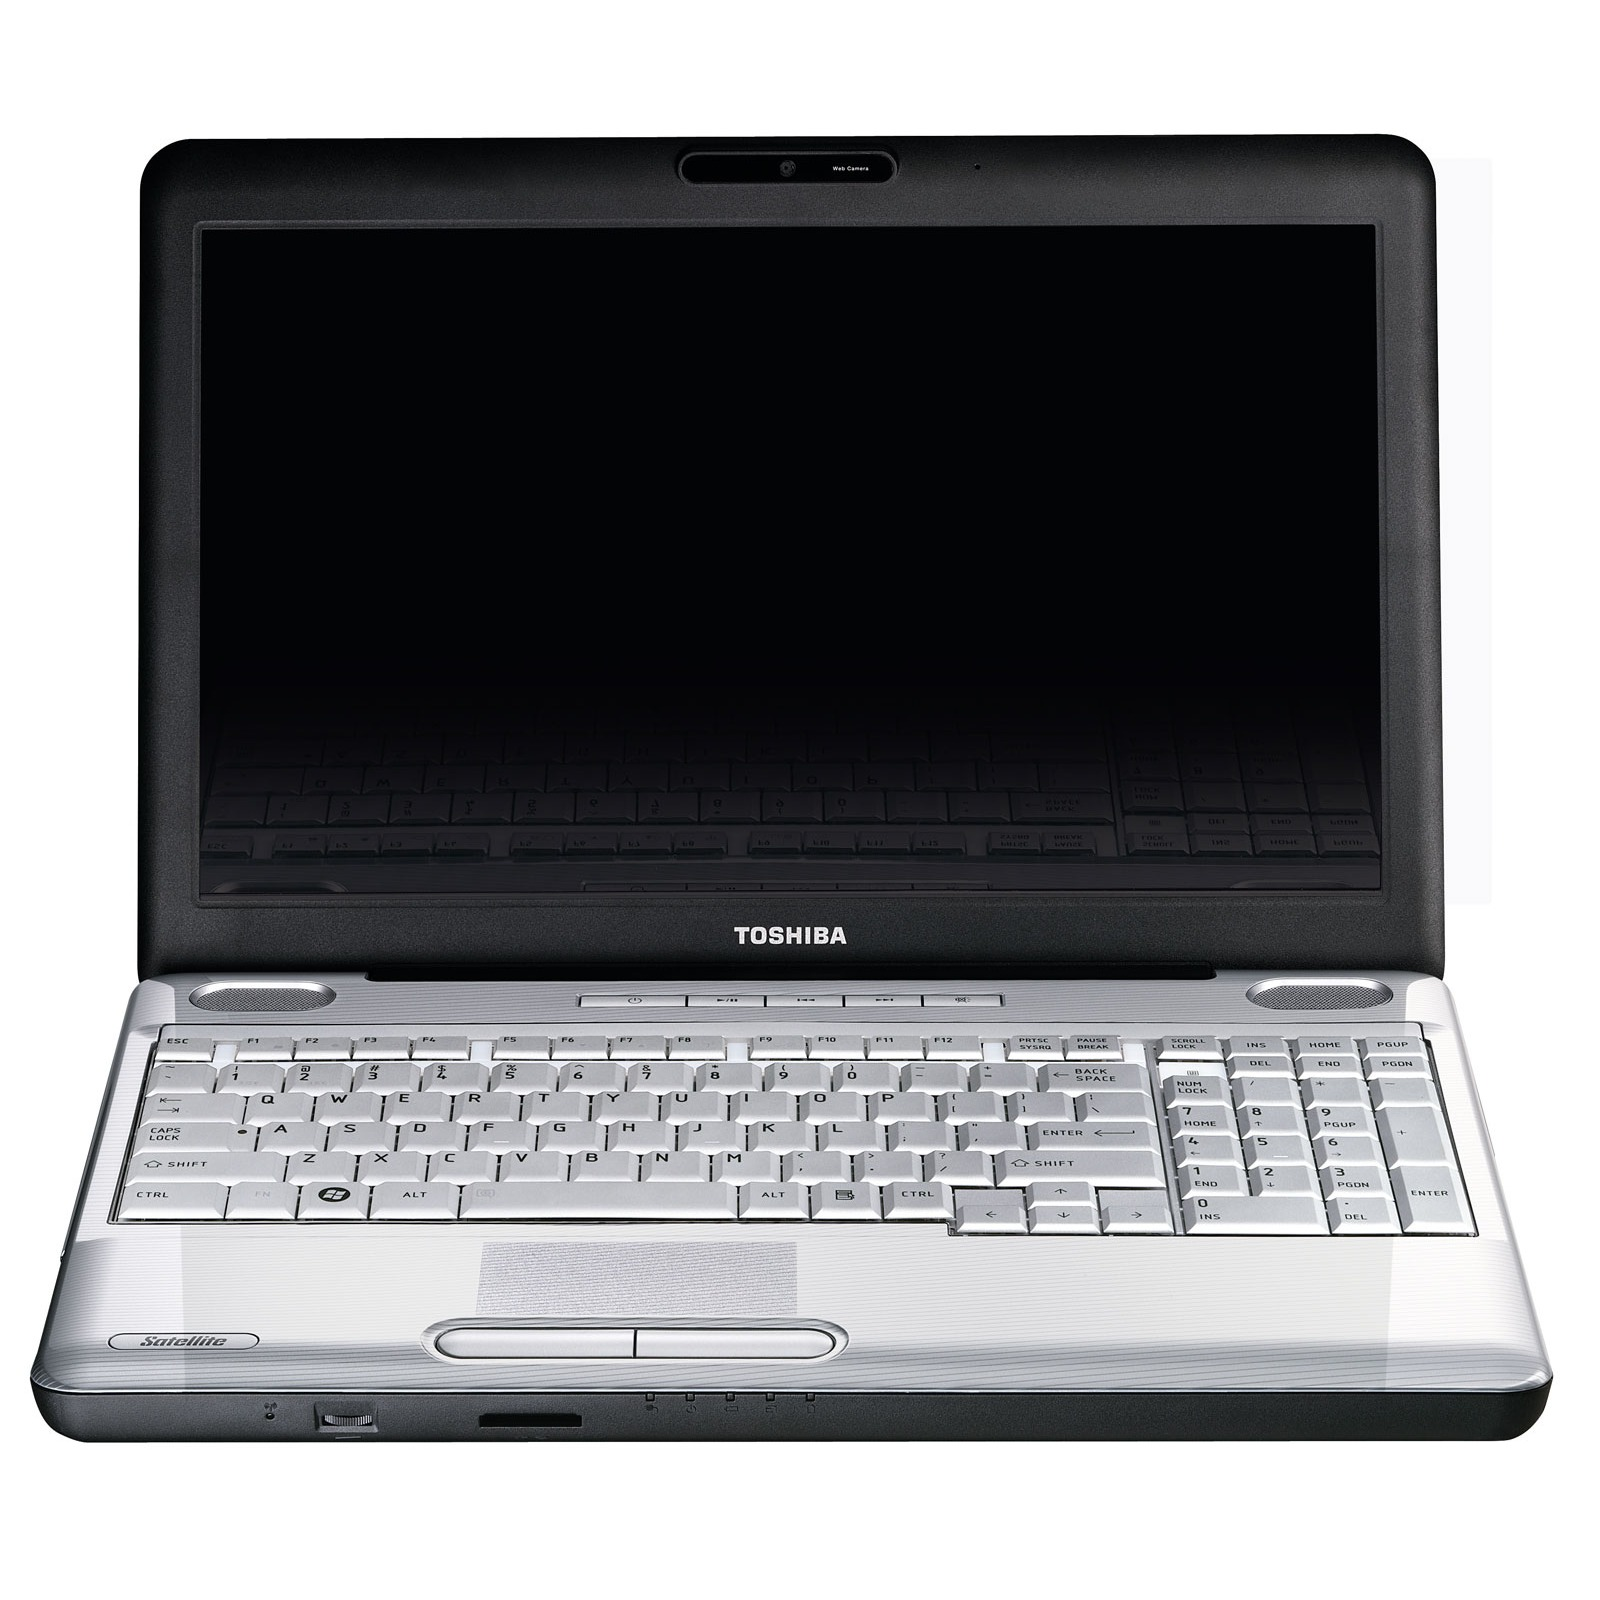 "PC portable Toshiba Satellite L500-13Z Toshiba Satellite L500-13Z - Intel Pentium Dual-Core T4200 4 Go 500 Go 15.6"" TFT Graveur DVD Super Multi DL Wi-Fi N Webcam WVFB"